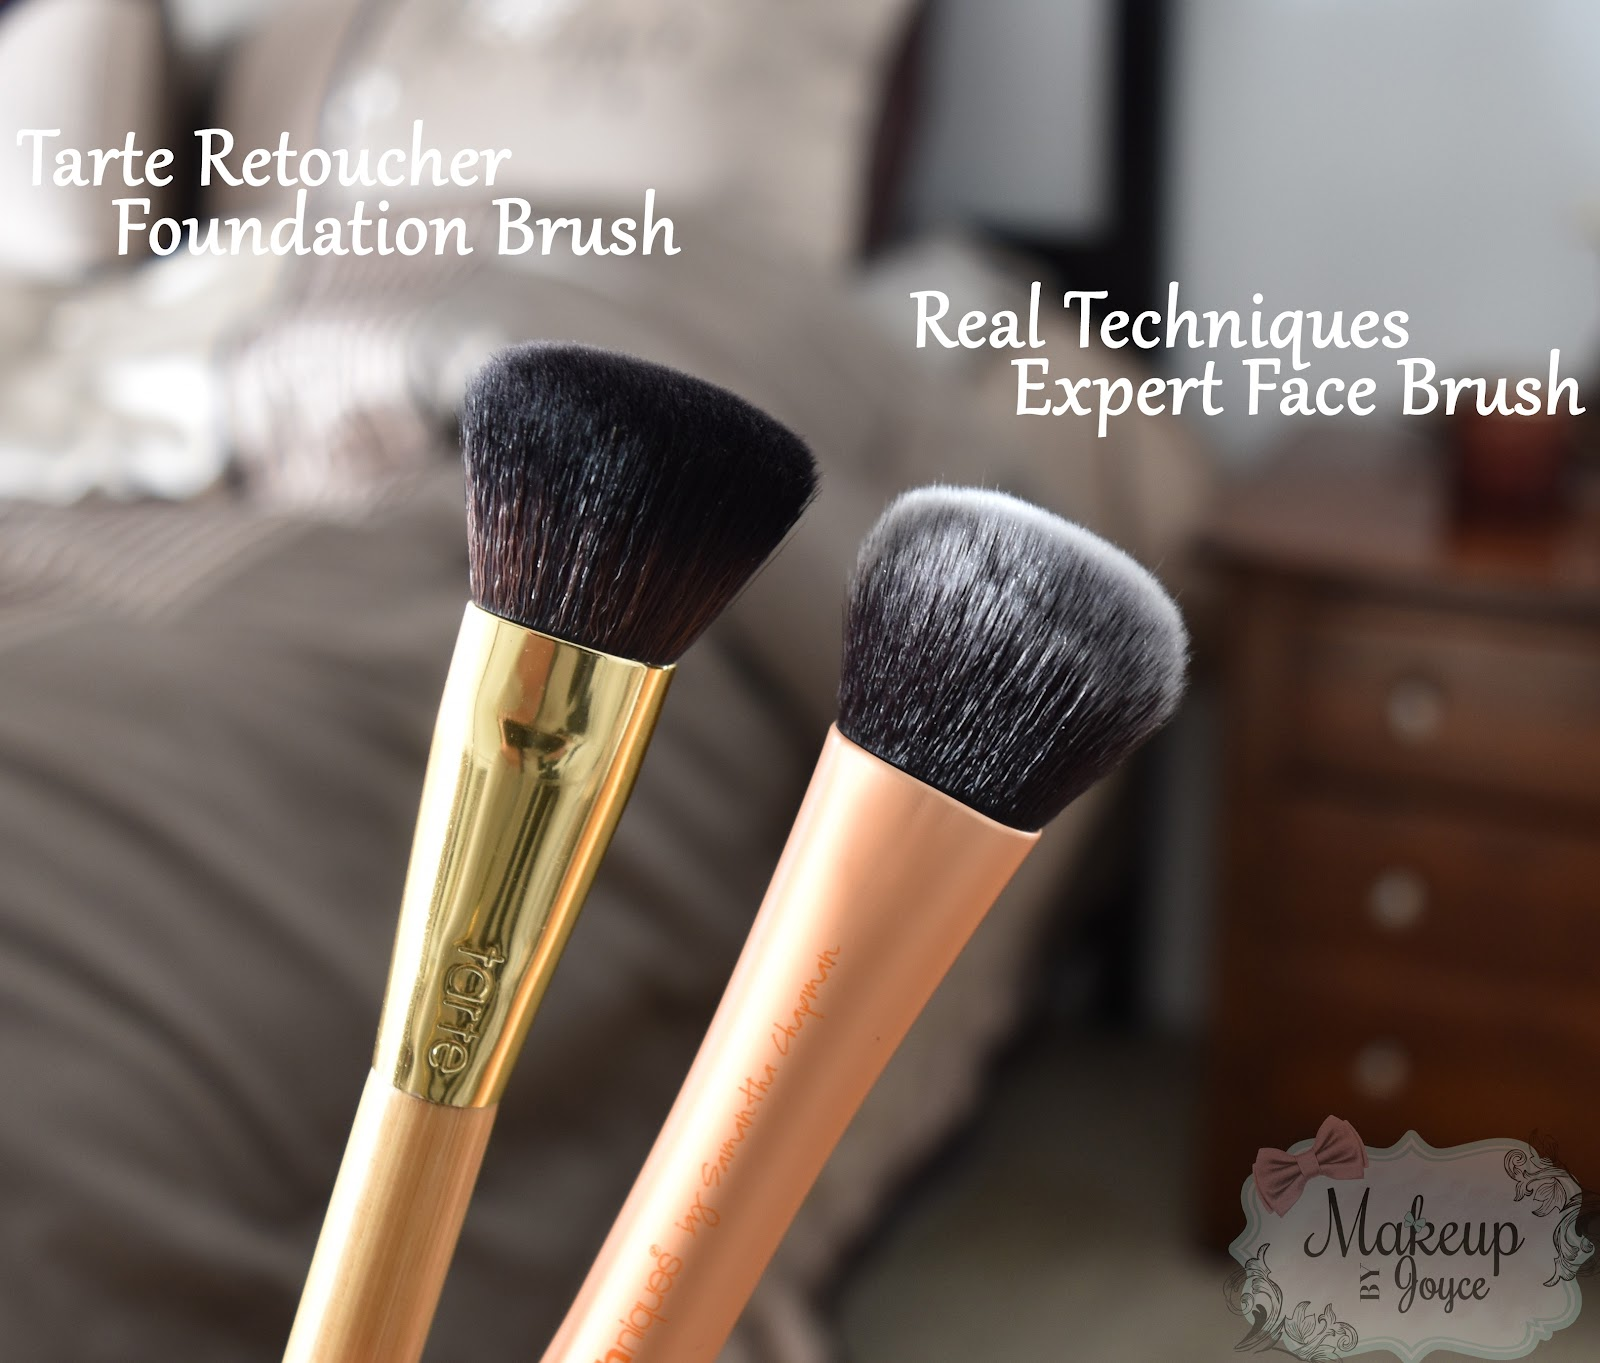 Expert Face Brush by Real Techniques #19